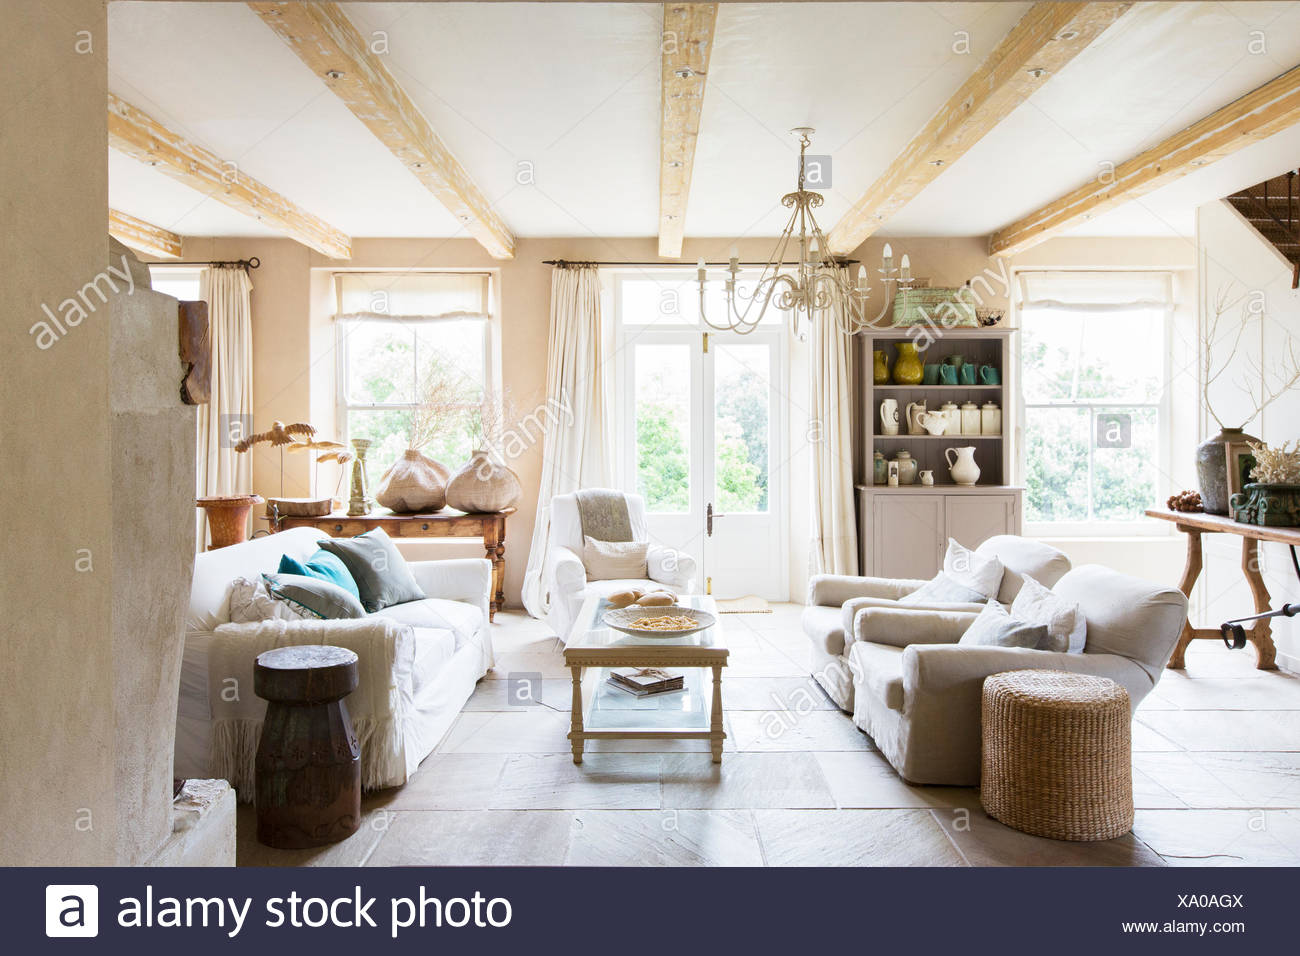 Sofas and coffee table in rustic living room - Stock Image